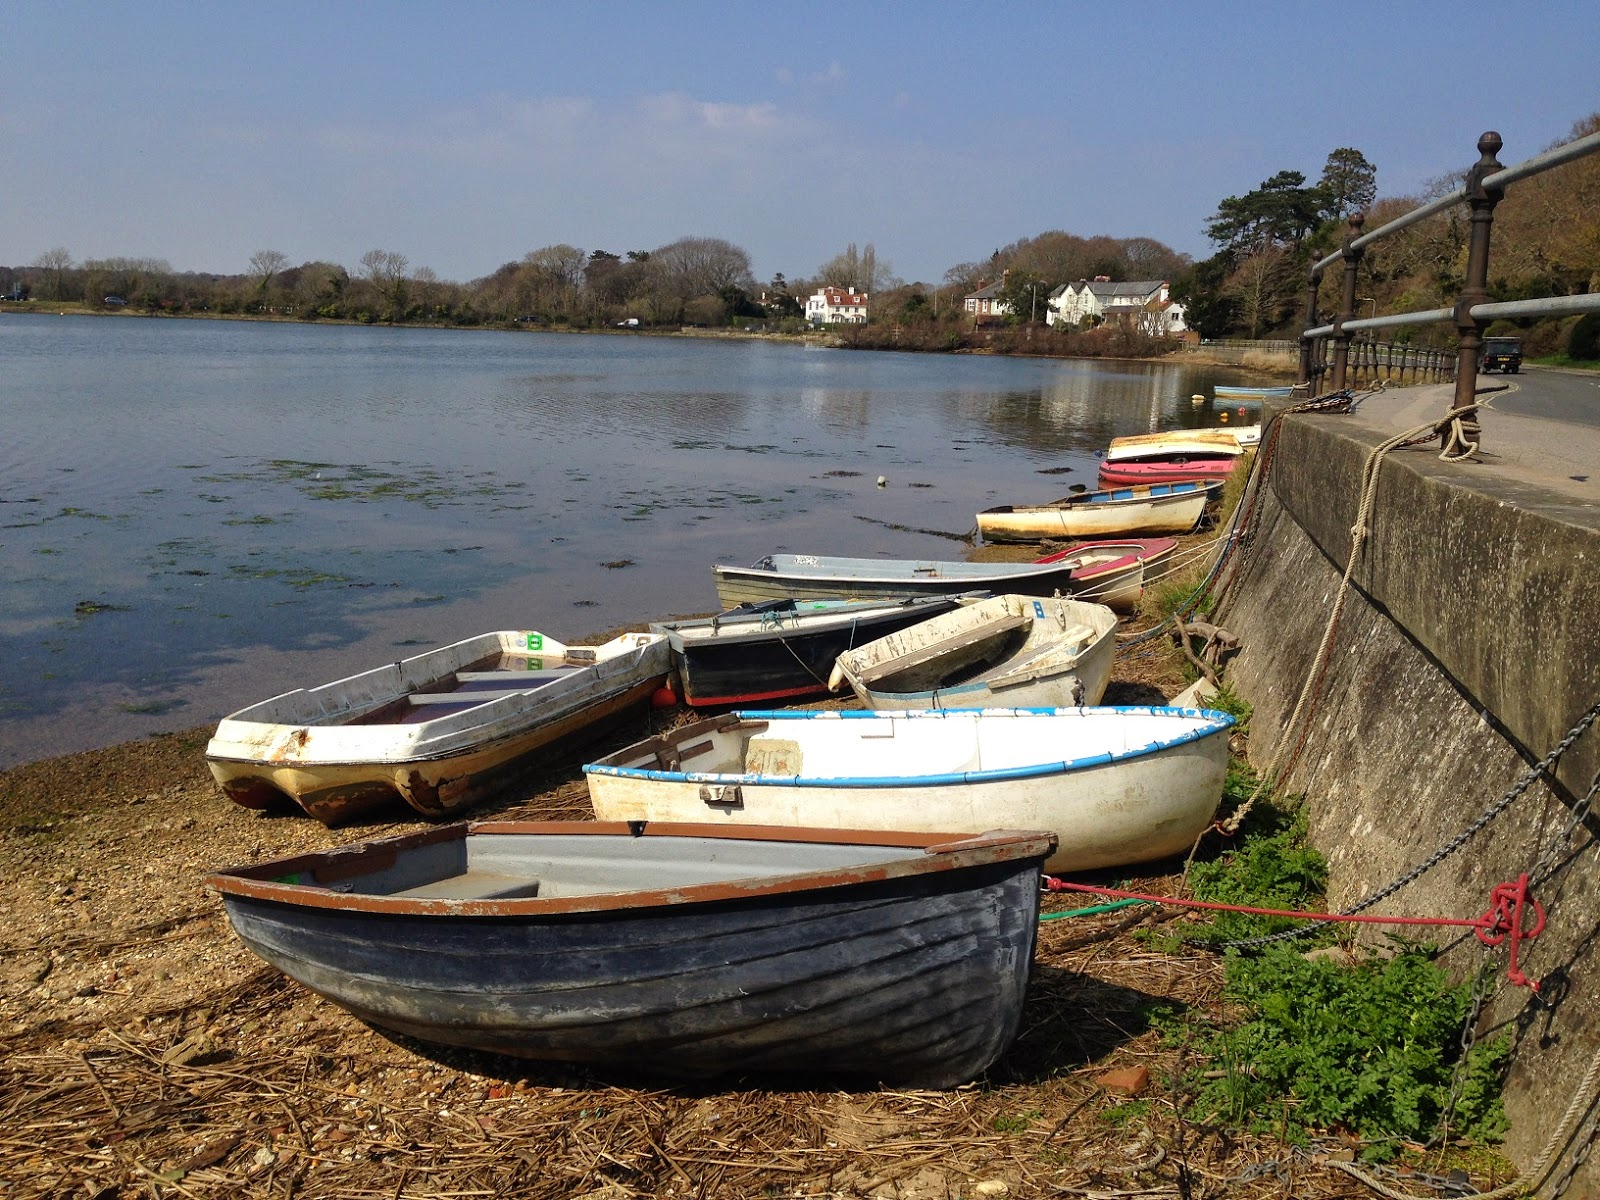 Small boats, Lymington